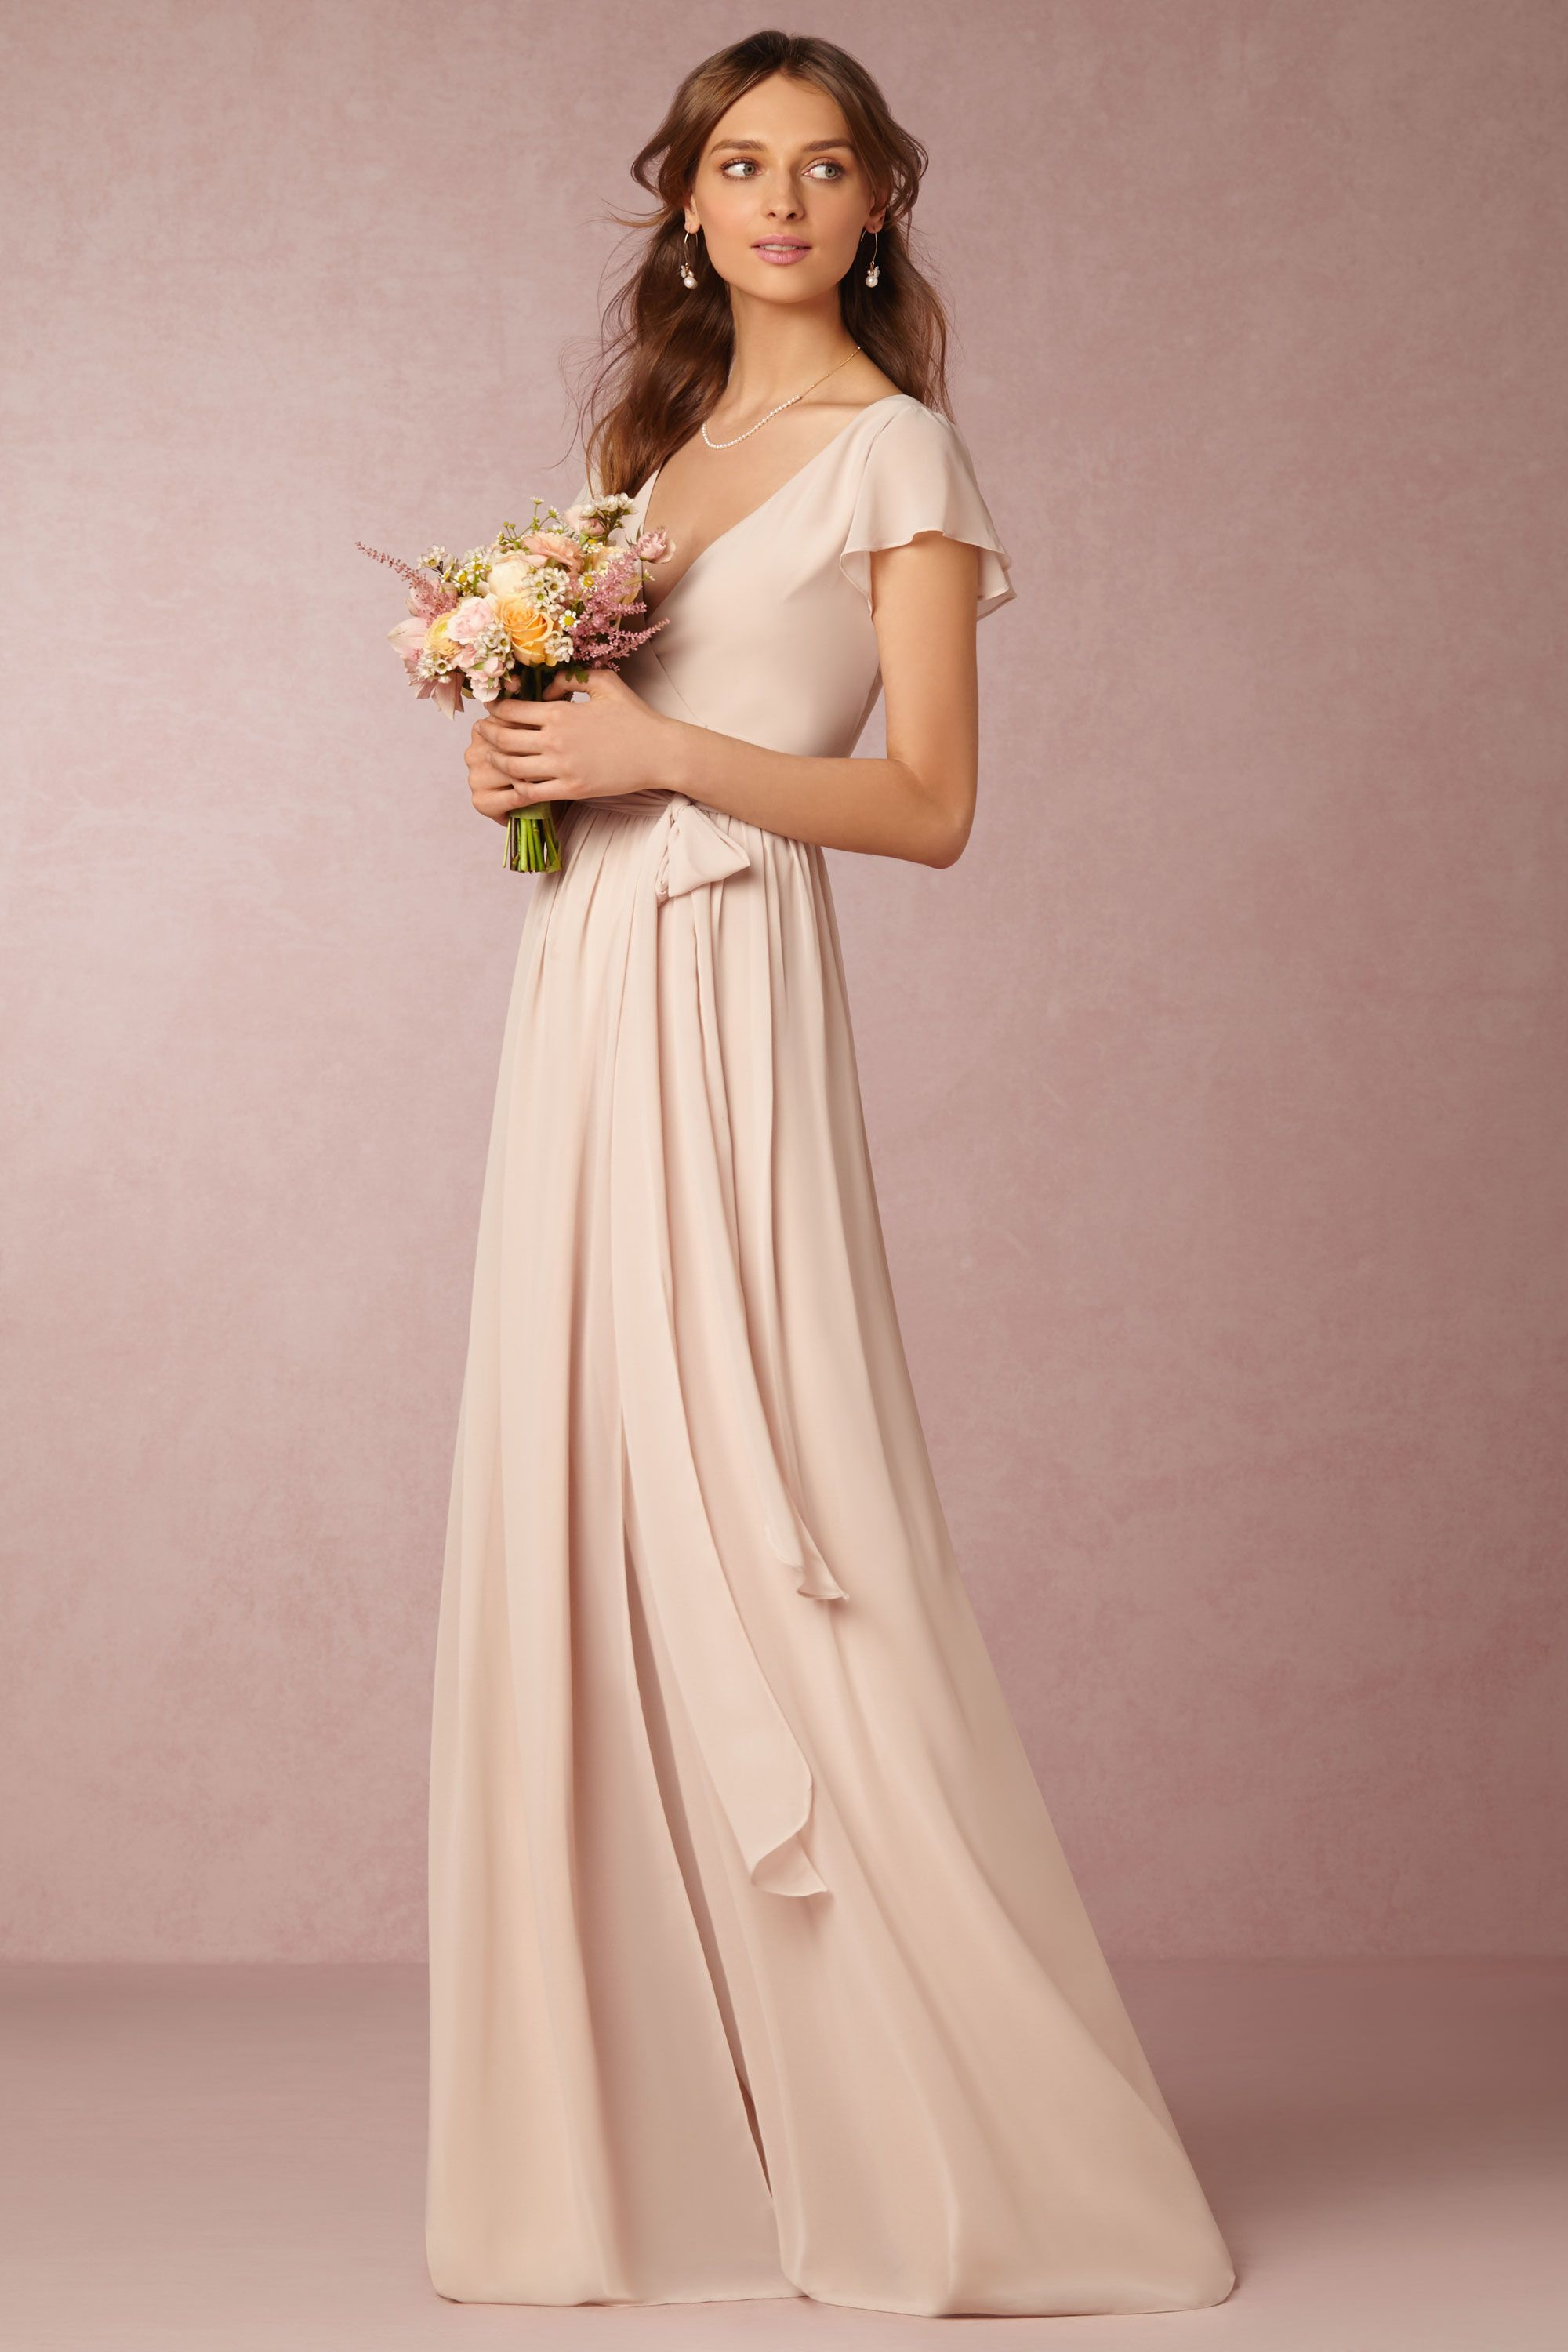 wrap dress with flutter sleeve, this neutral maids style